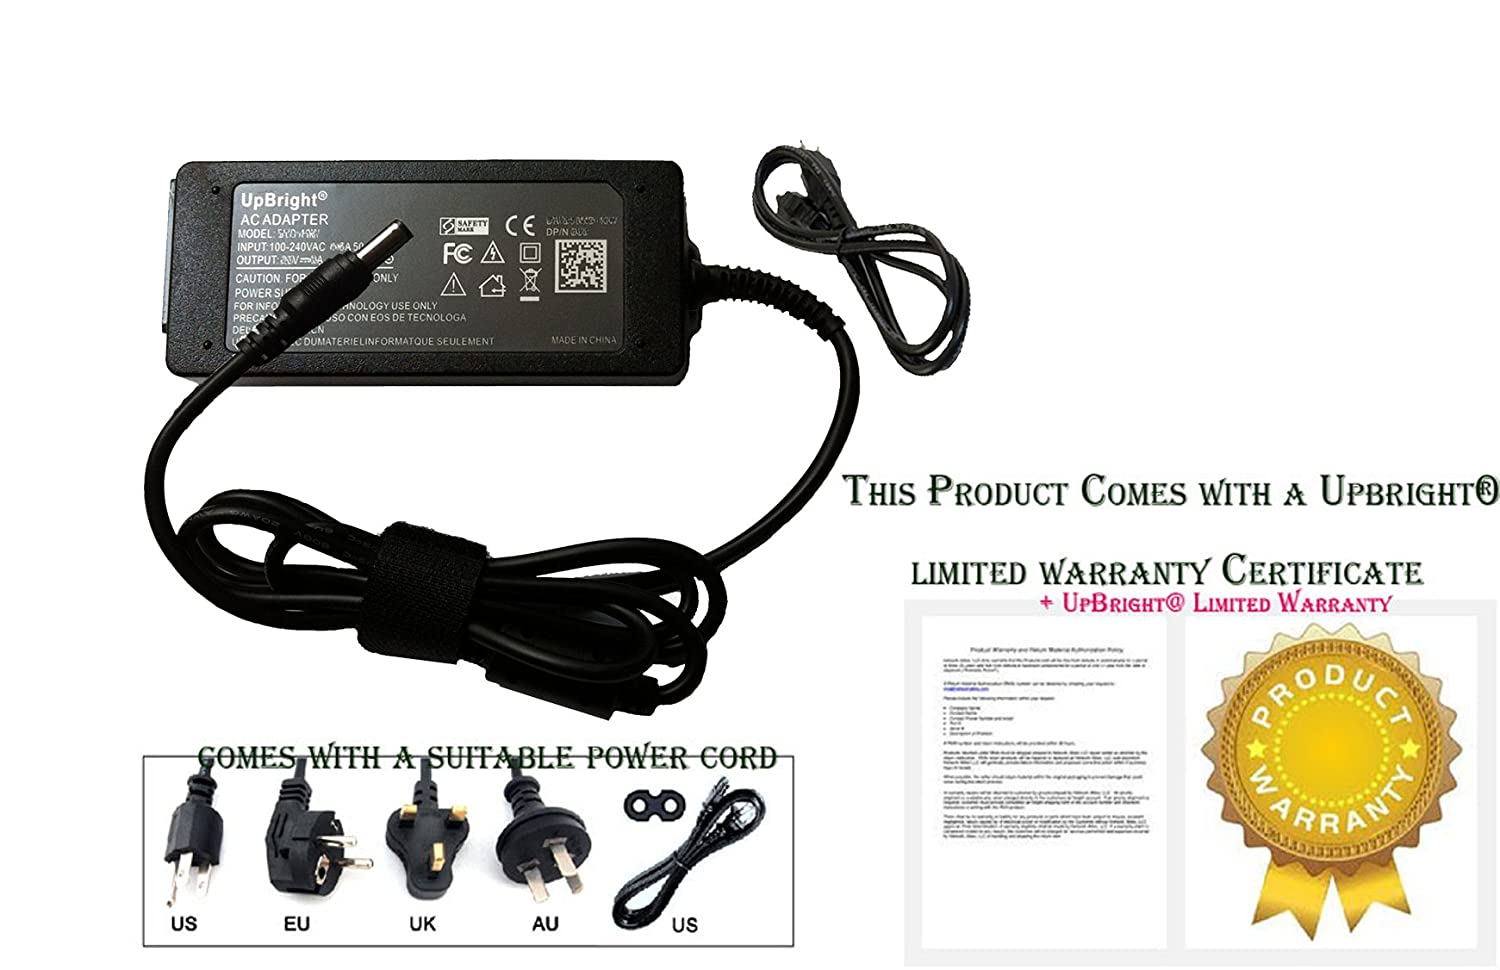 Amazon.com: UpBright 12V AC / DC Adapter For 2Wire 3800HGV 33600HGV ...